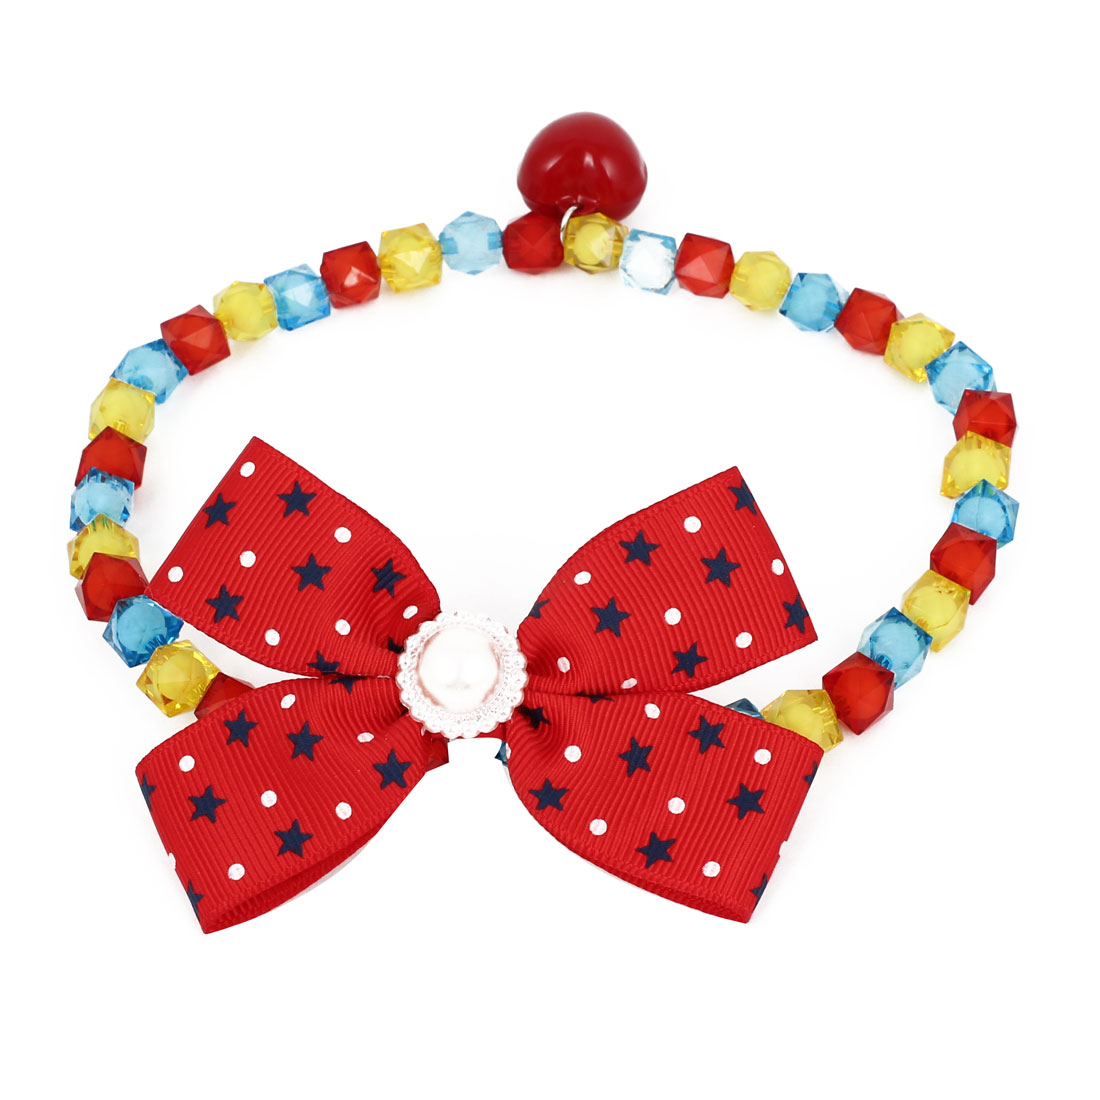 Metal Bell Pendant Bowtie Accent Pet Dog Plastic Faceted Beads Collar Necklace Multi Color L